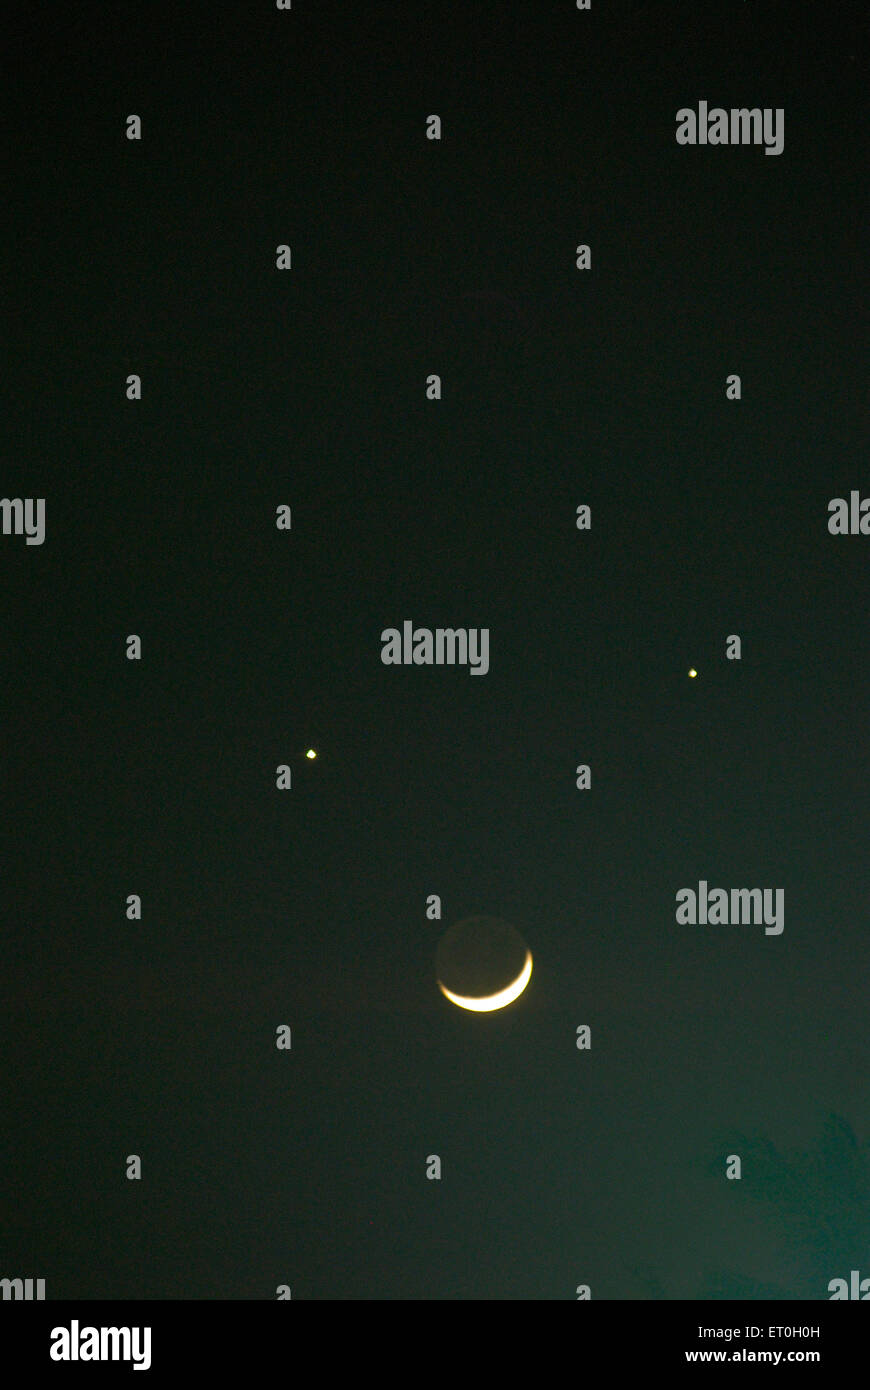 Planets and moon conjunction of jupiter and venus with